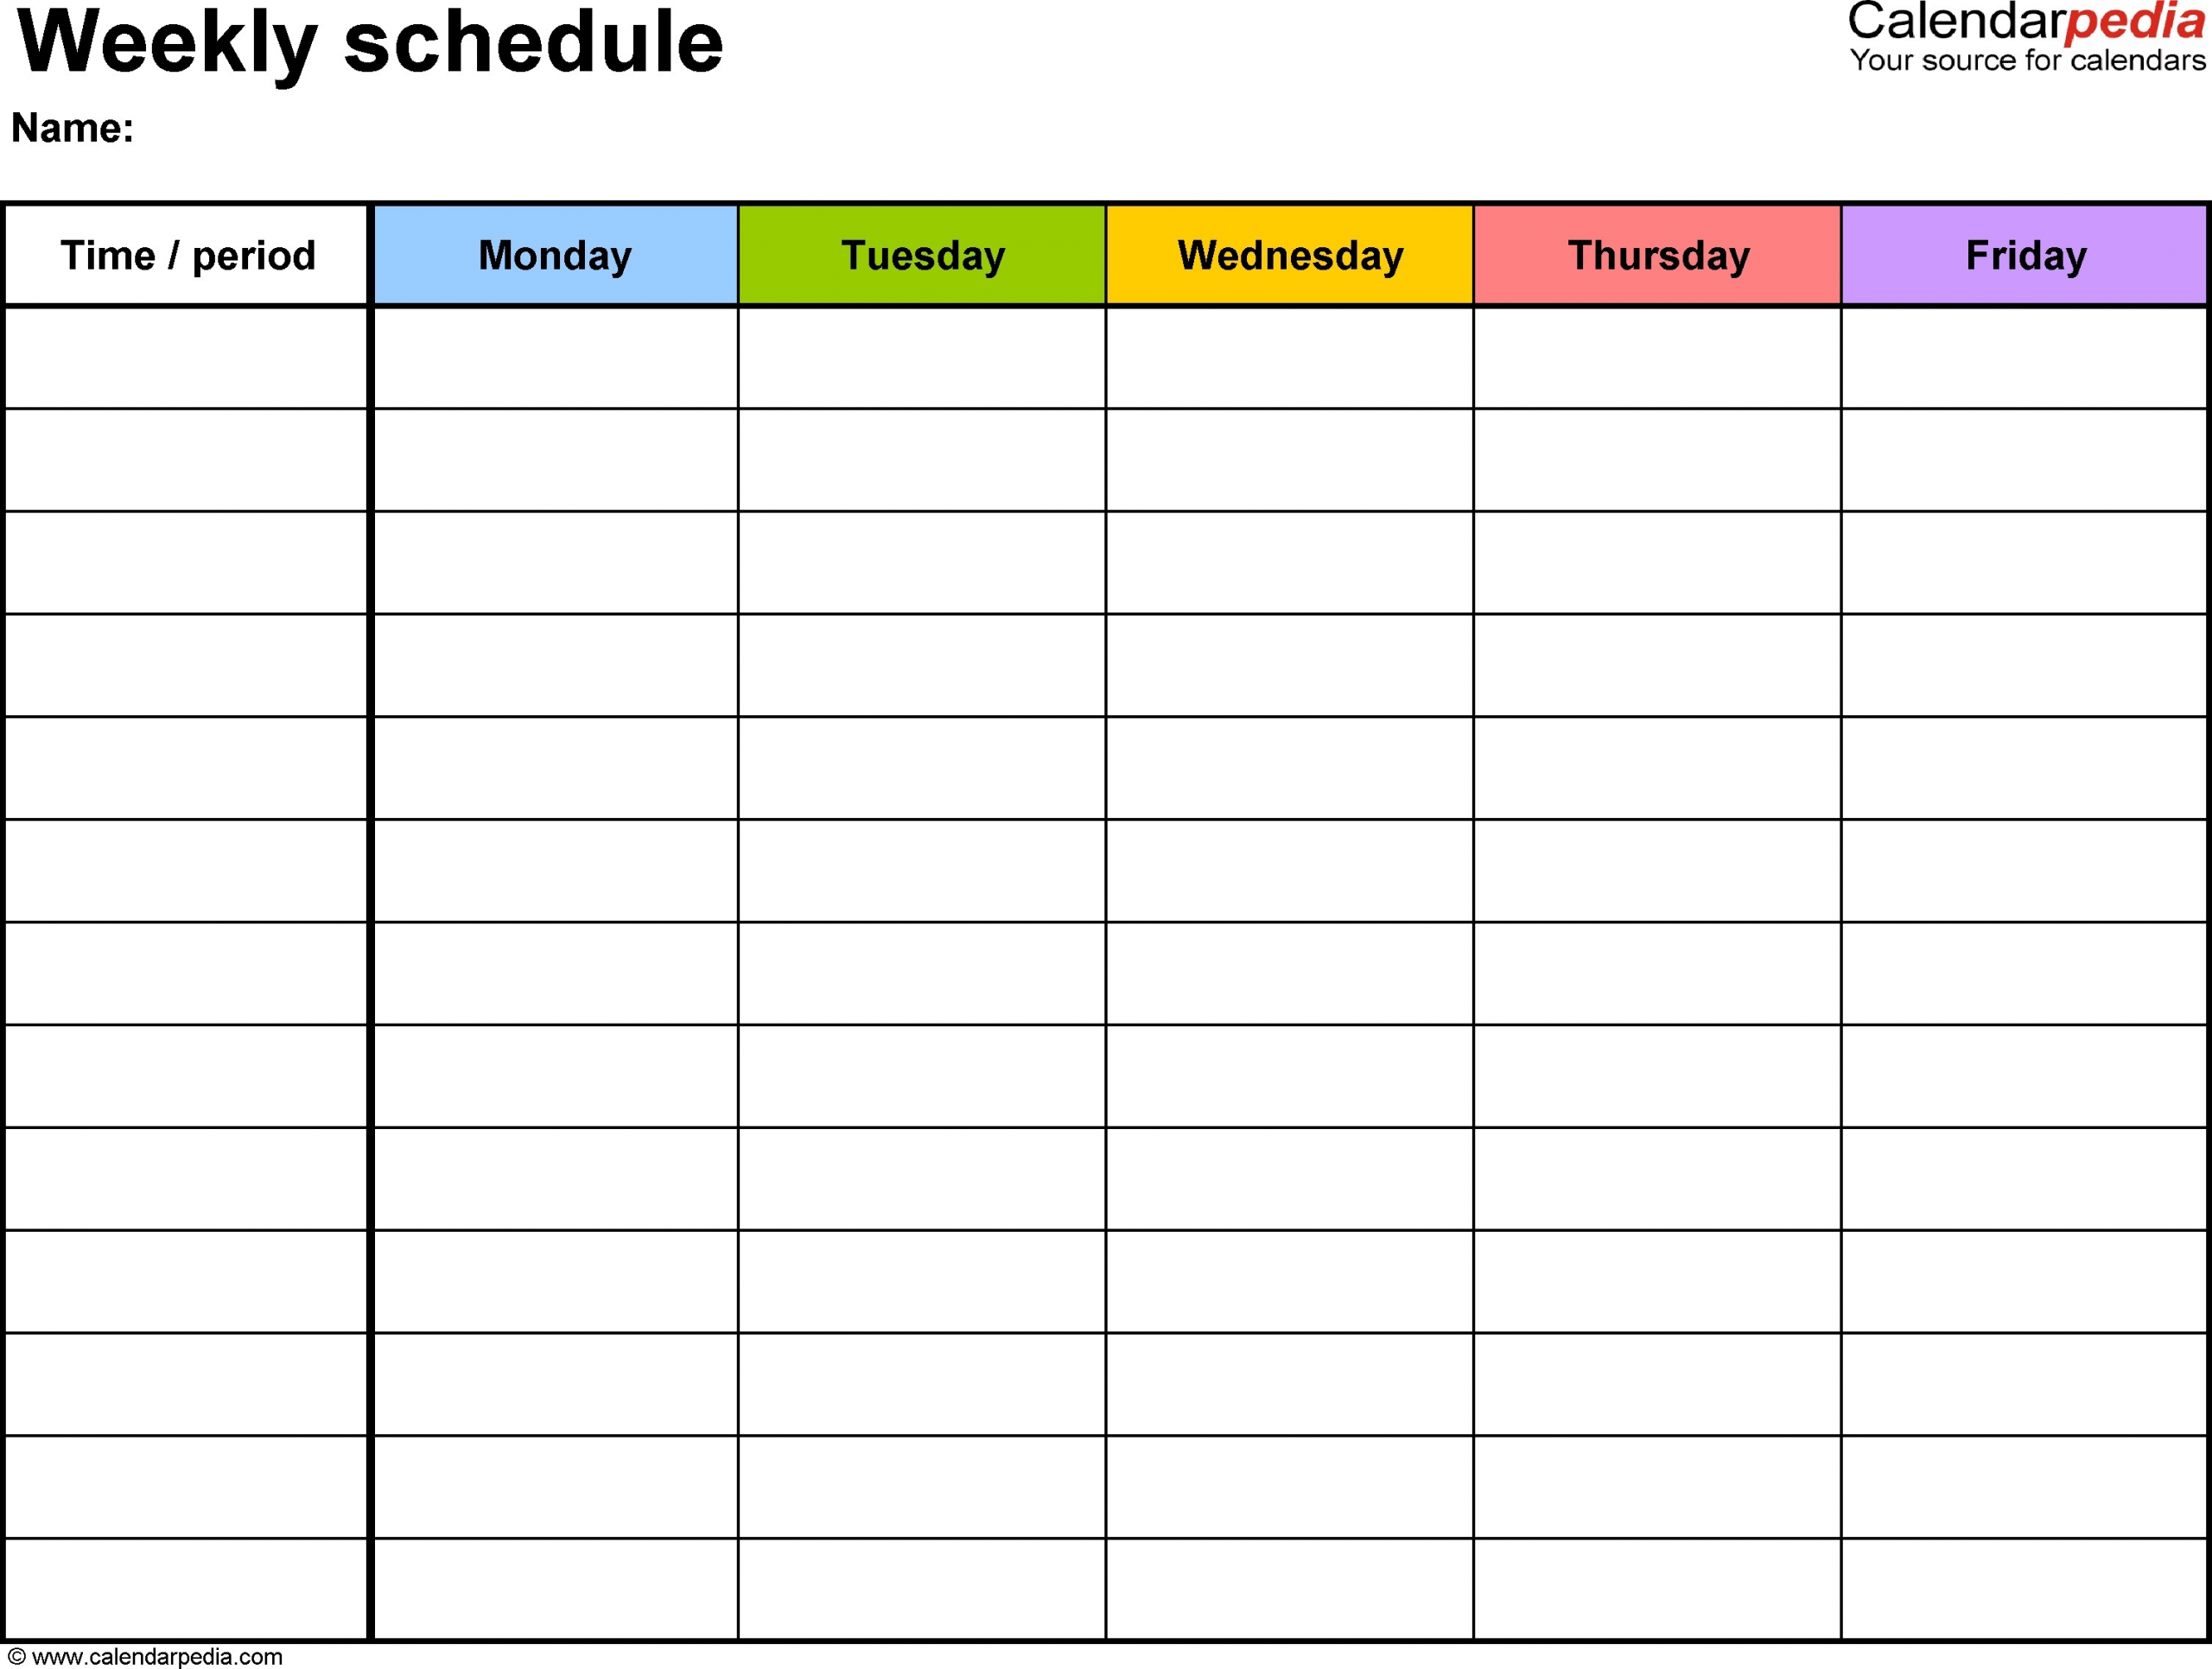 Printable Daily Calendar With Time Slots 2018 – Template Weekly Calendar Printable With Time Slots